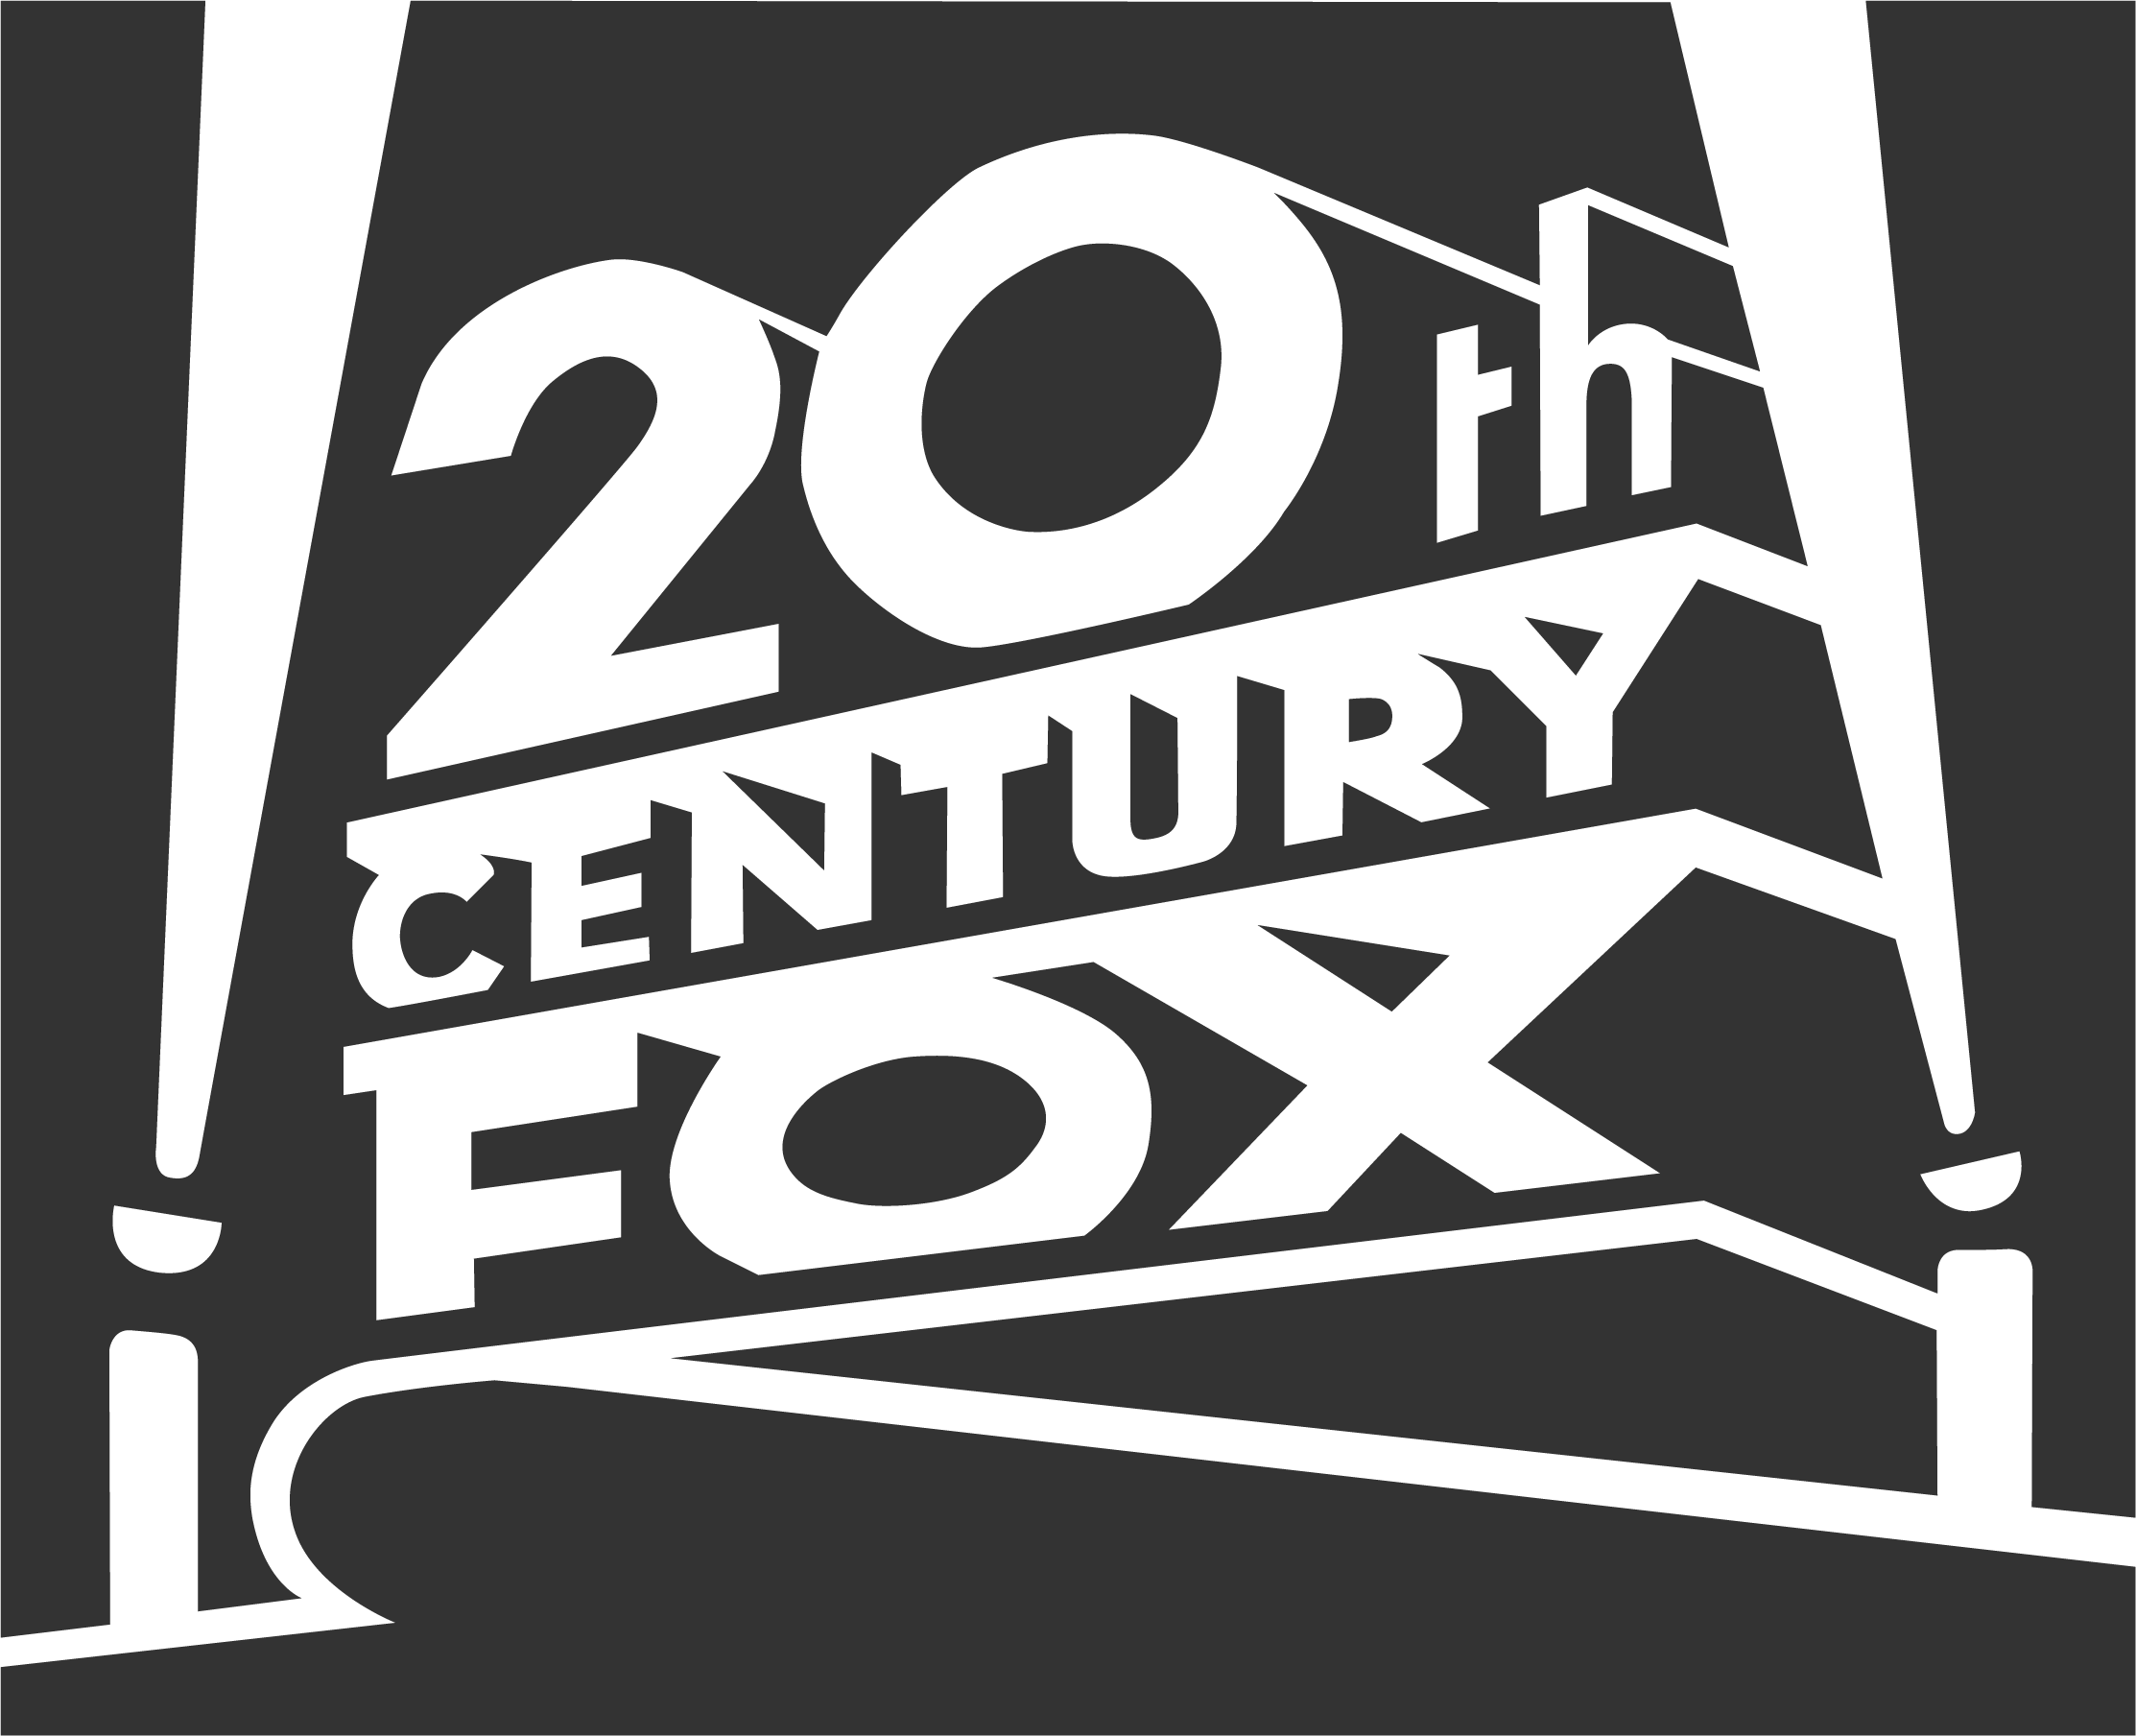 20th_century_fox_logo.png